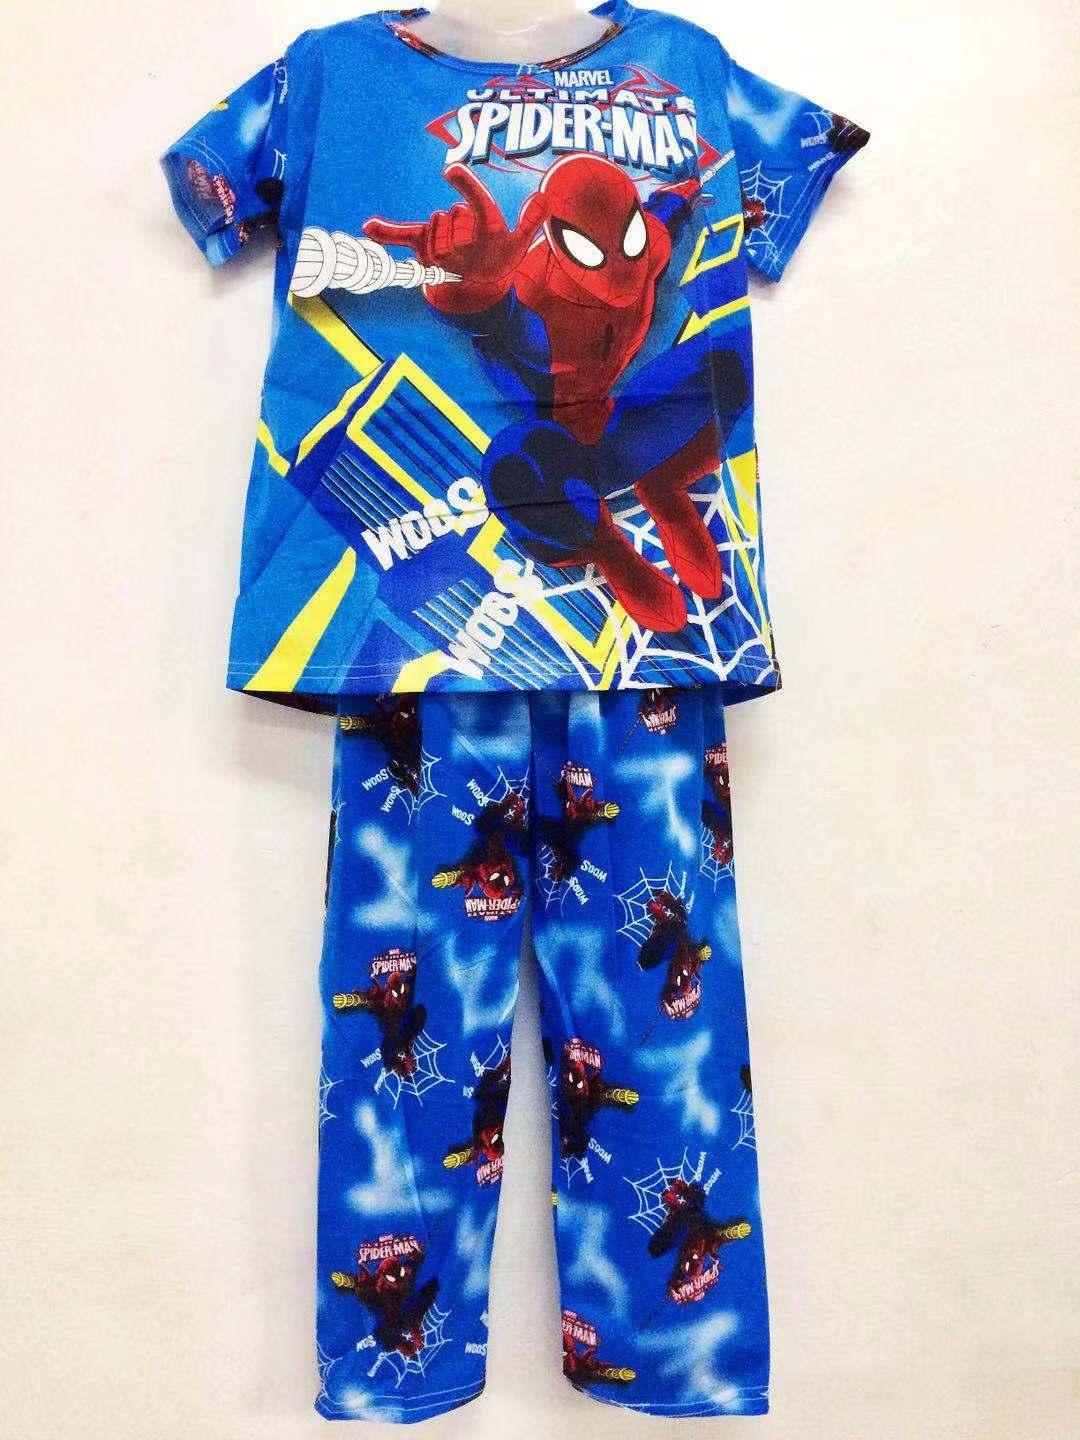 Xuebami Pajama Set Boys Kids Sleepwear Character Spidey By Xuebamiph